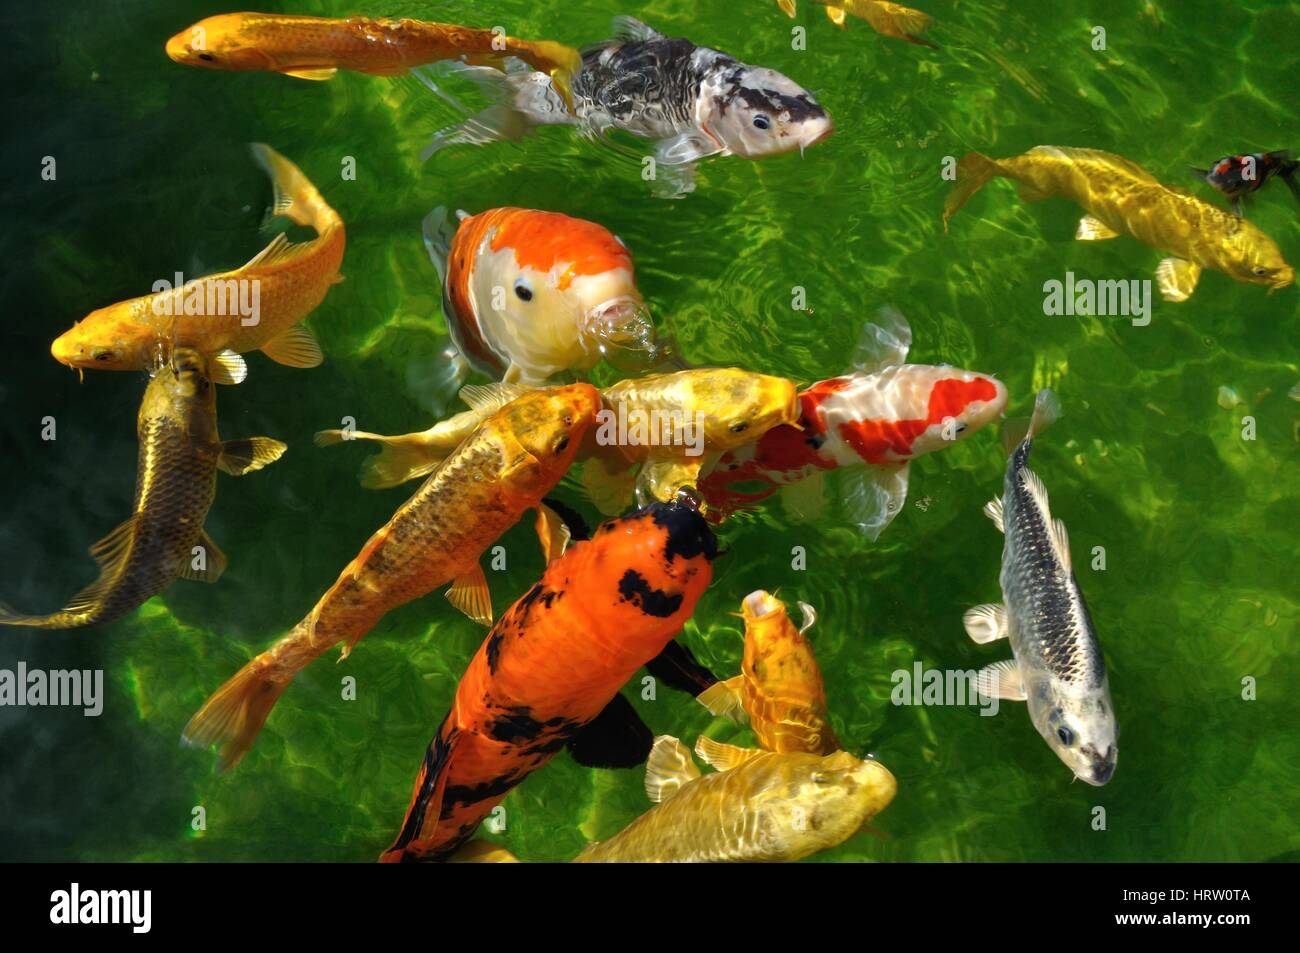 Koi Bassin Carpes Koi Dans Un Bassin Stock Photo 135159146 Alamy